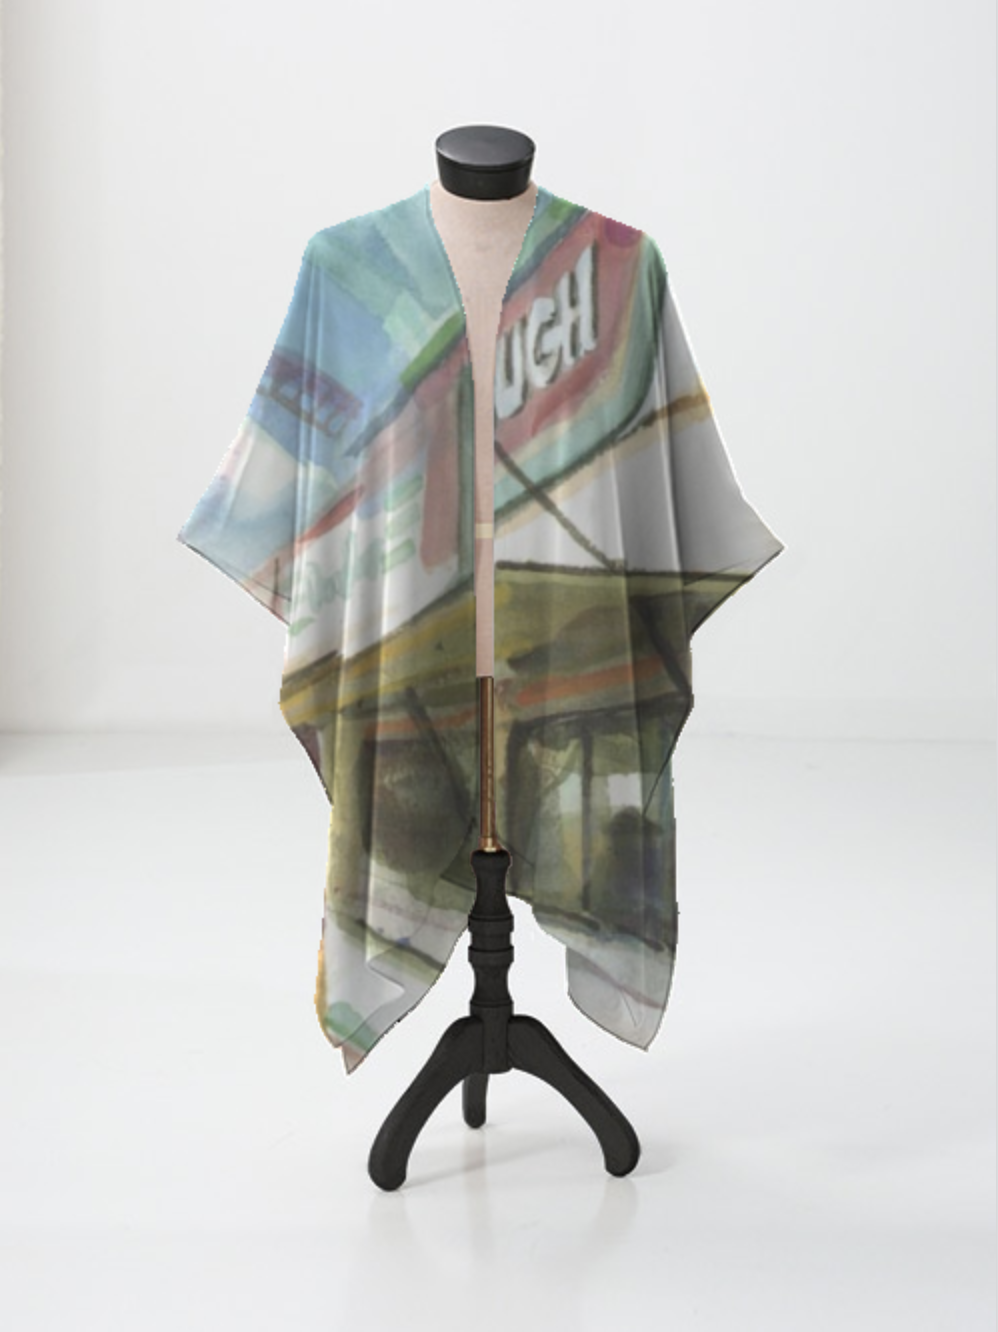 Sheer-Wraps-WilliamHeydt-VidaCollection2018-8.png